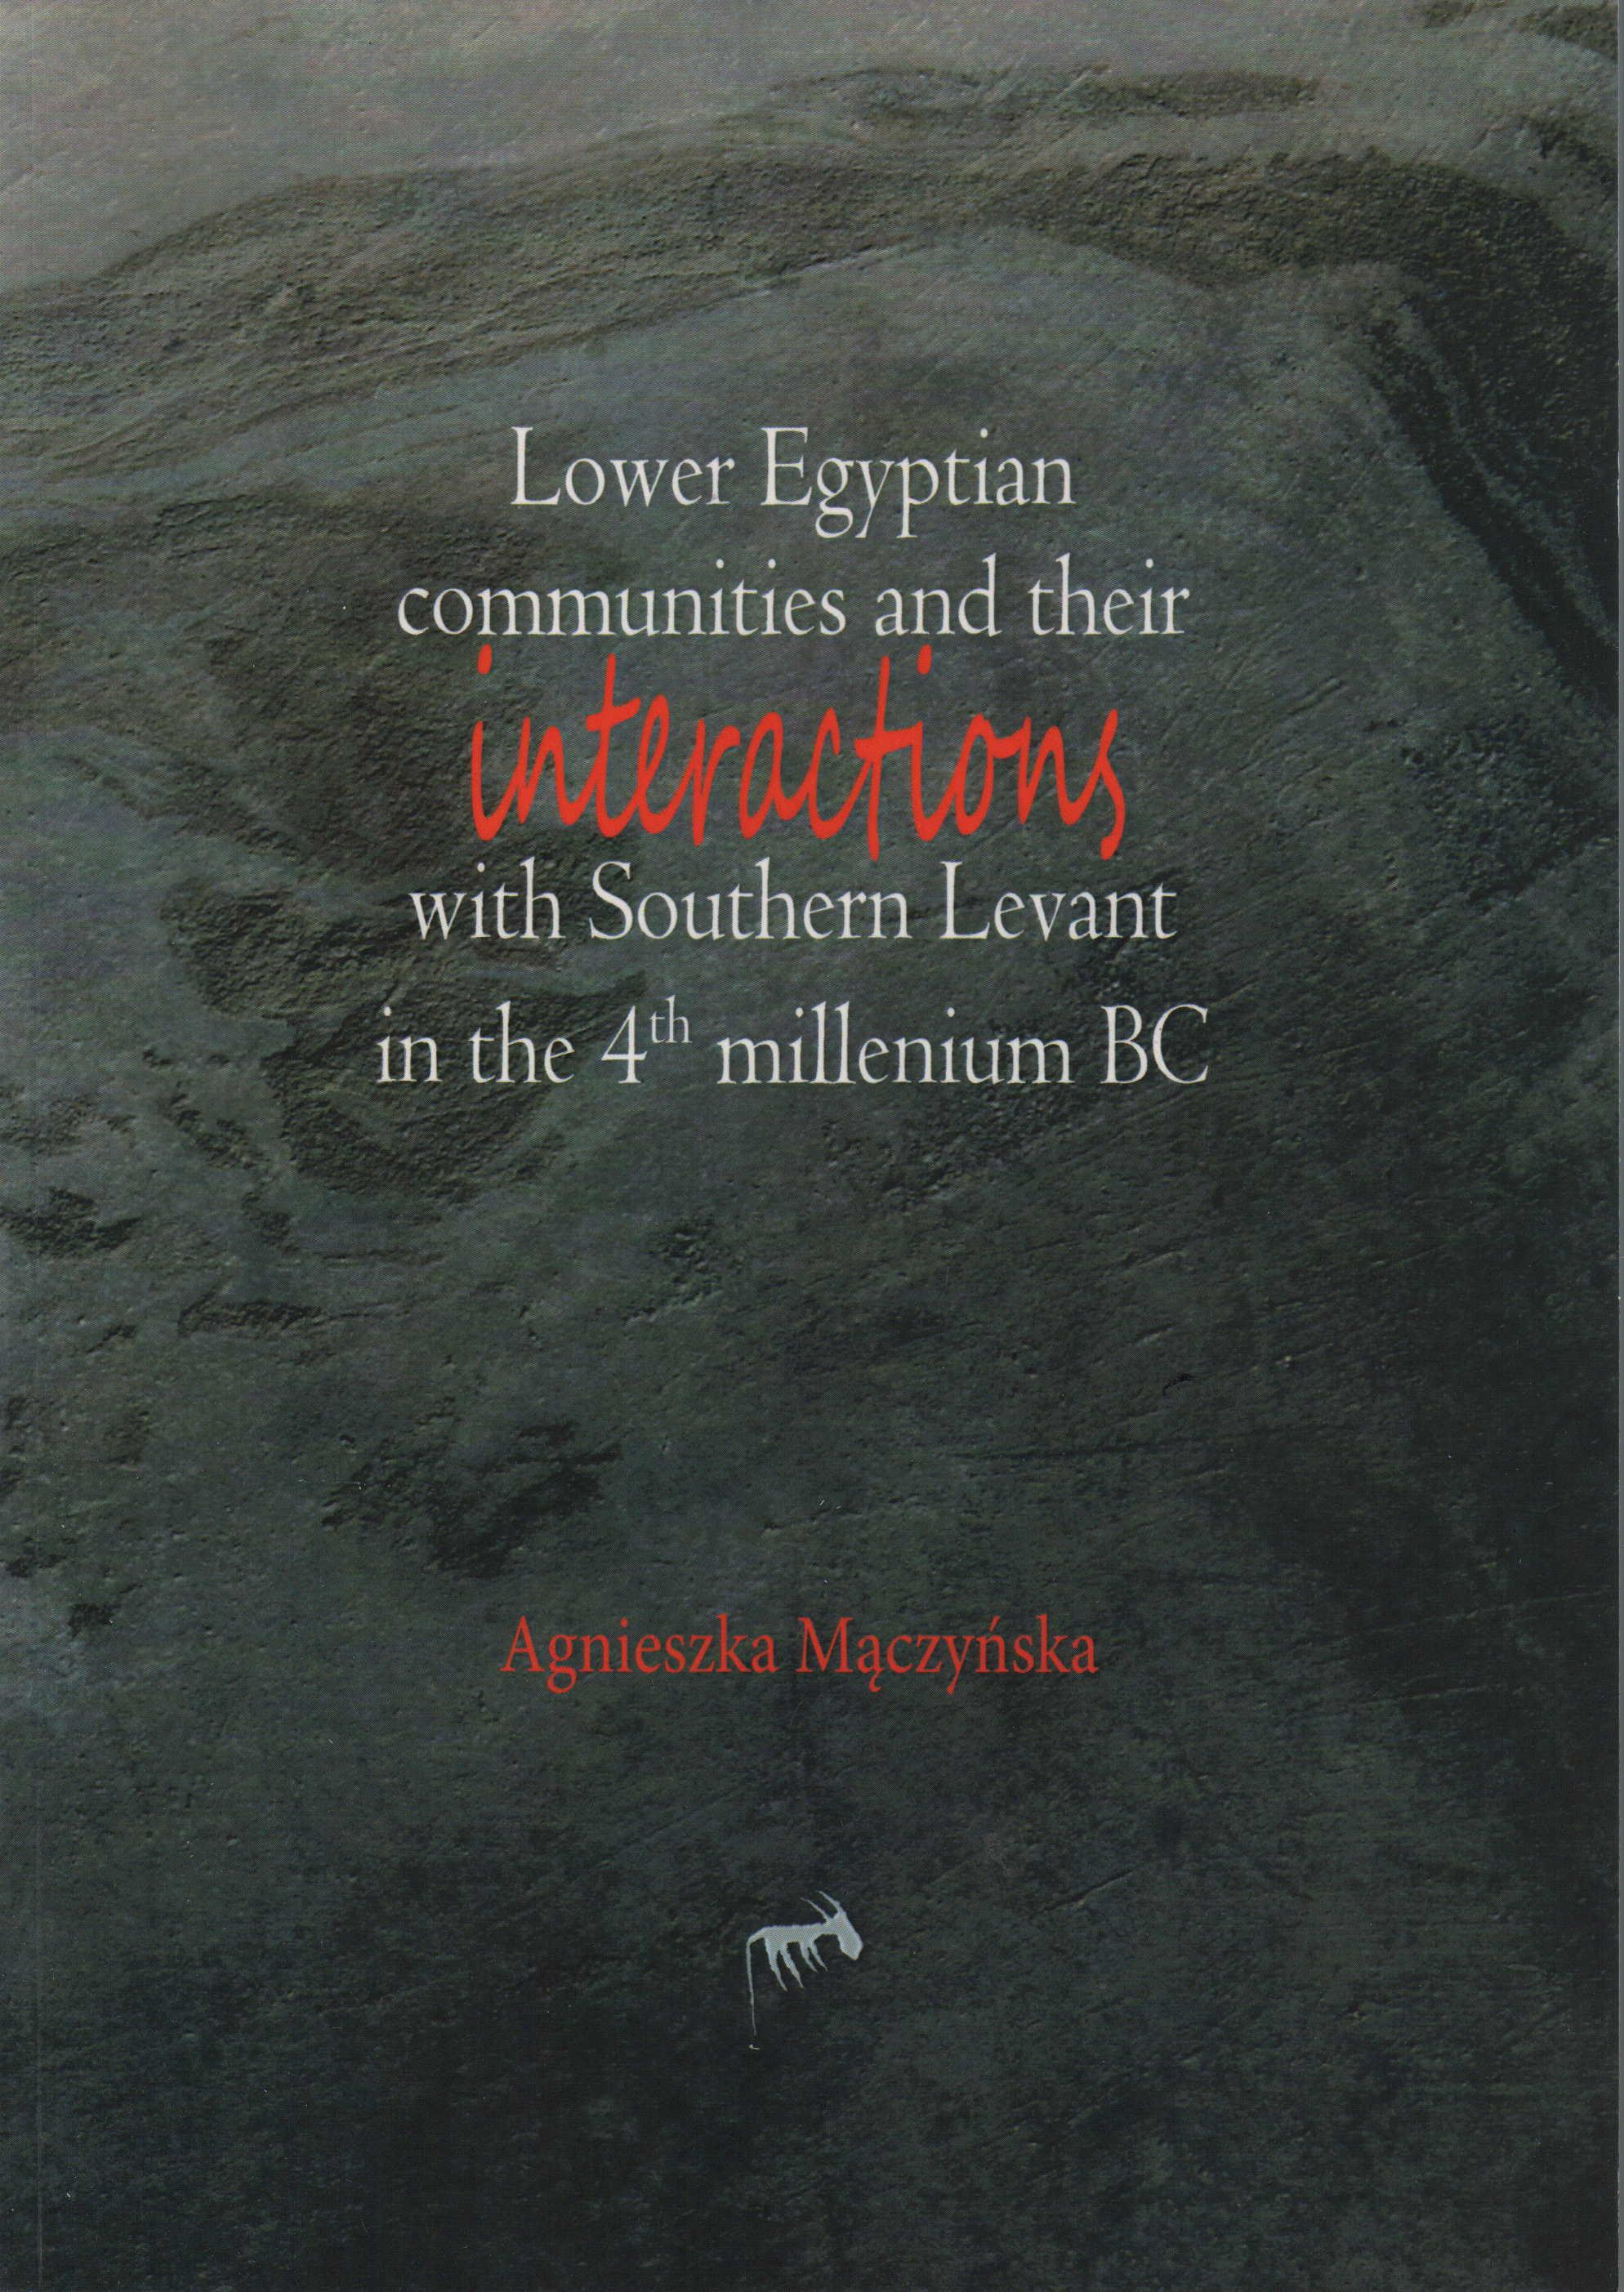 Lower Egyptian Communities and Their Interactions with Southern Levant in the 4th Millennium BC